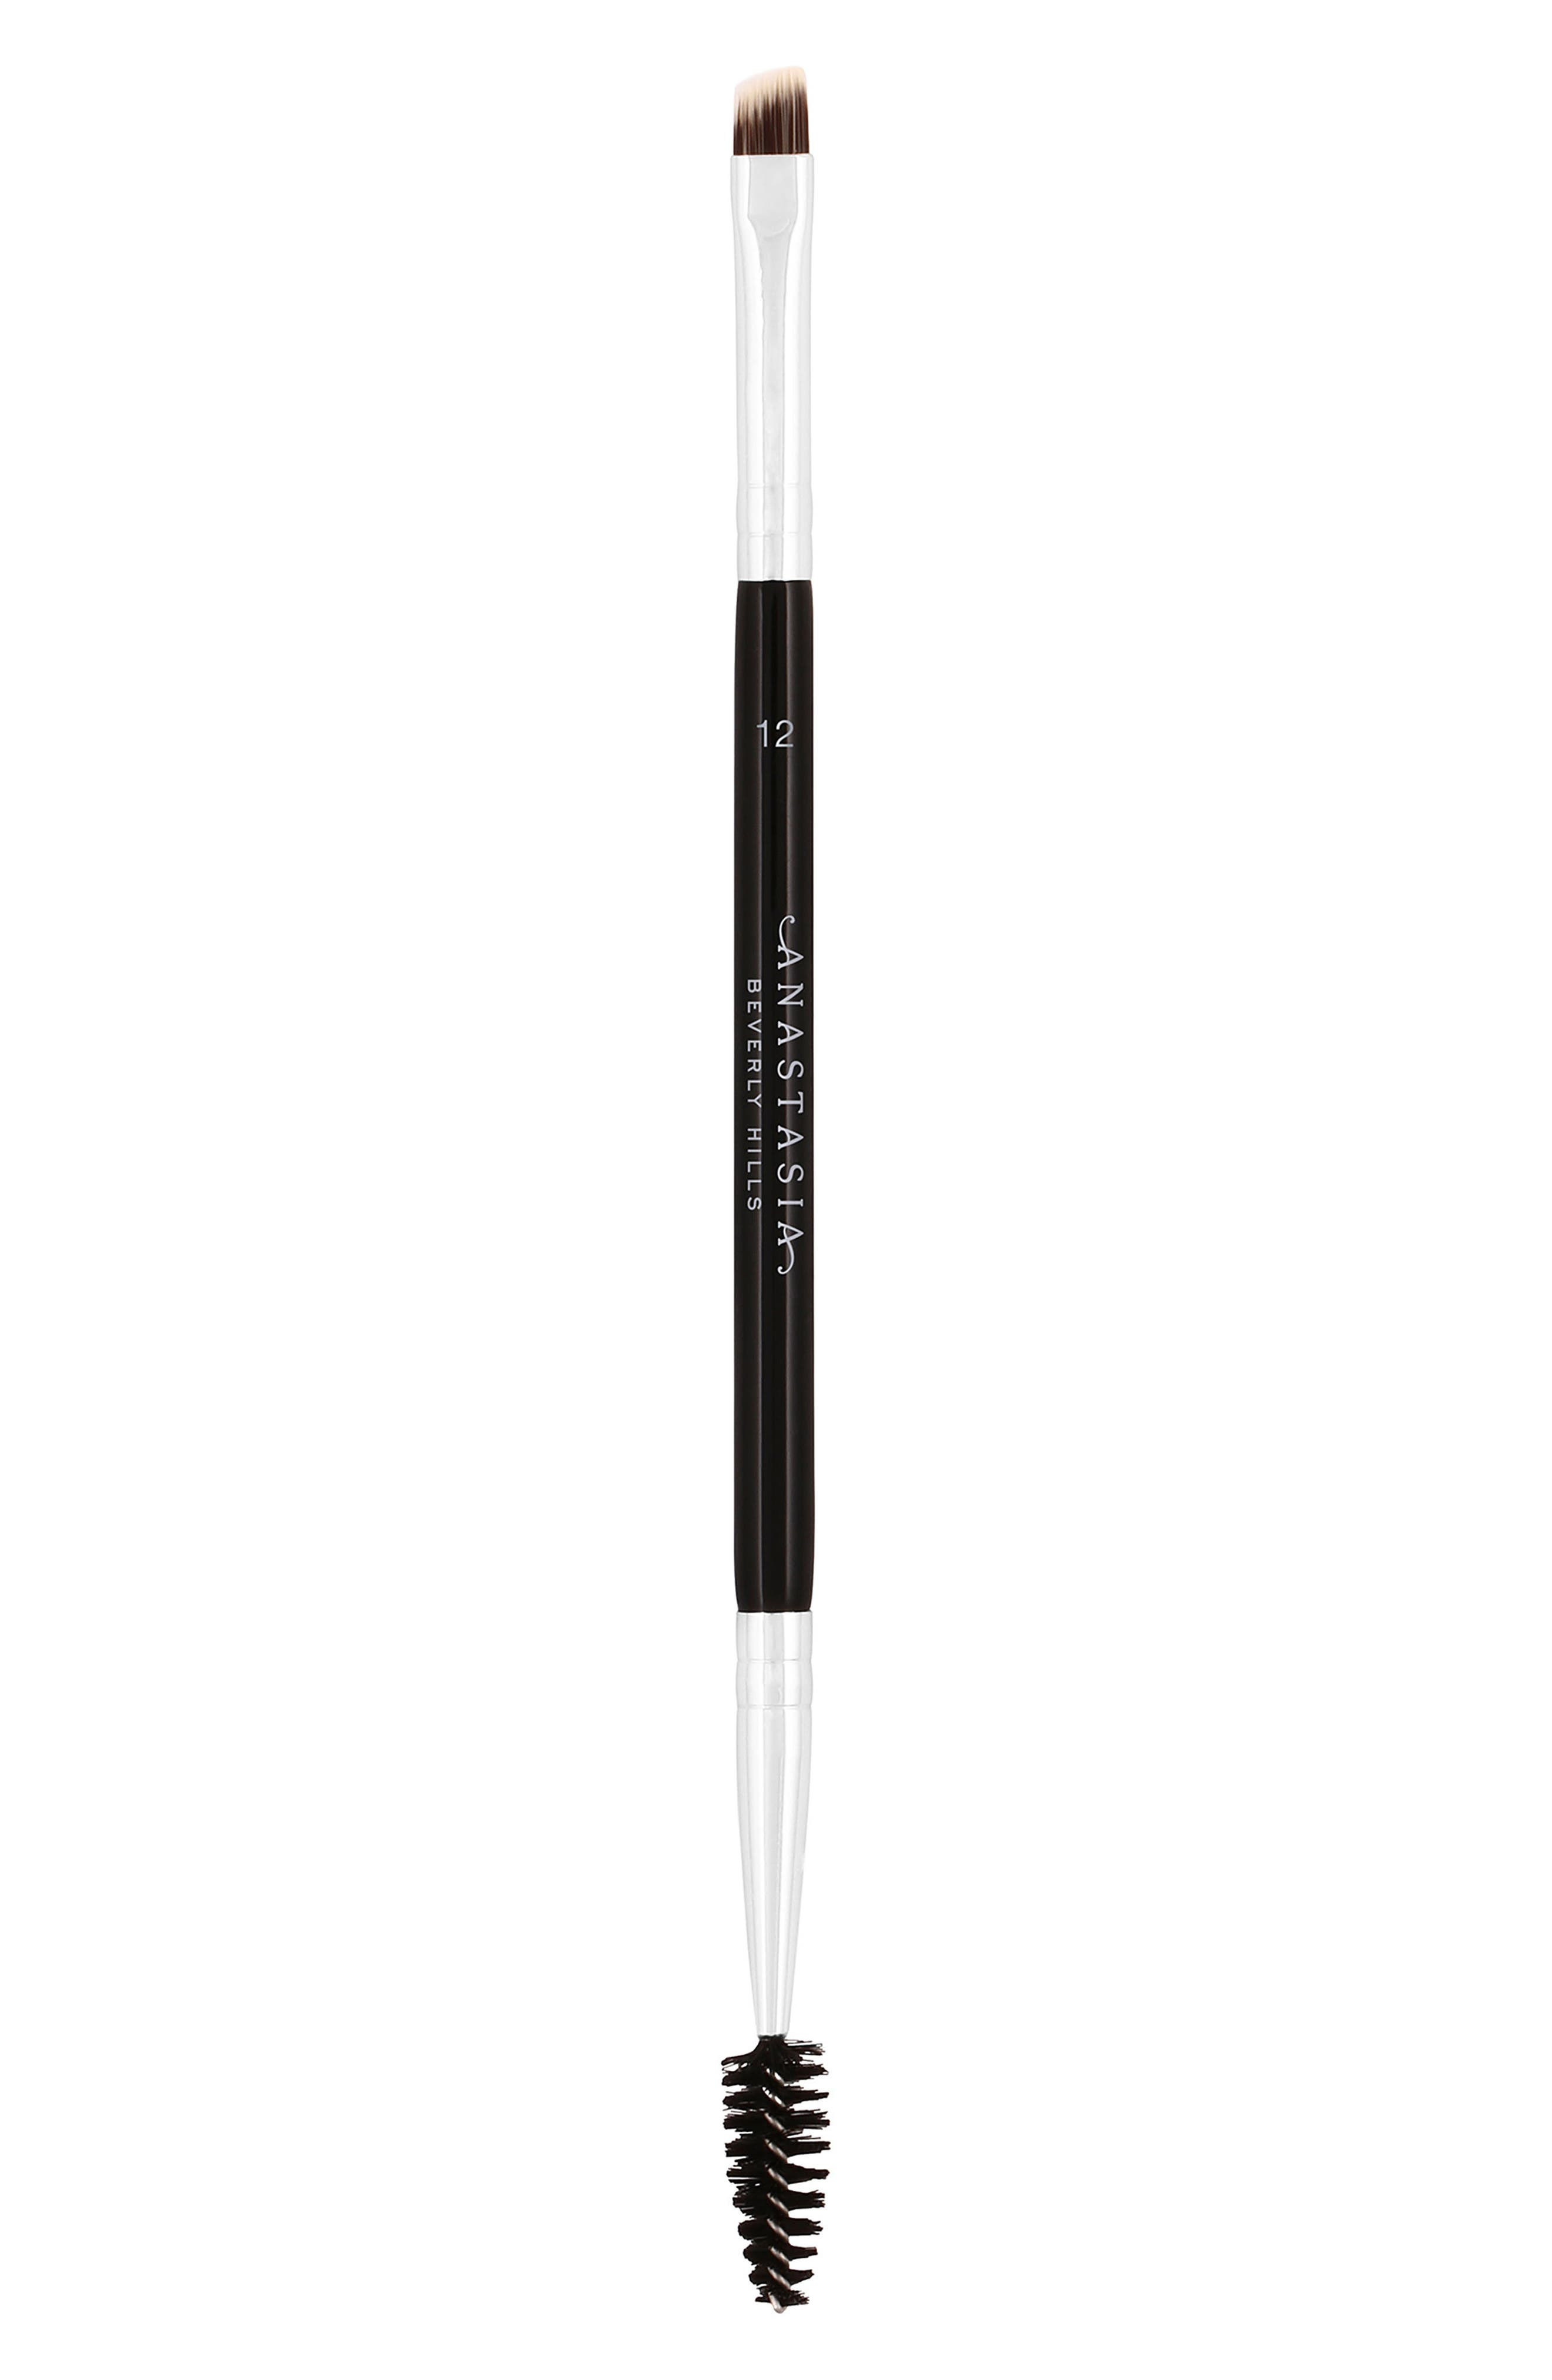 ANASTASIA BEVERLY HILLS #12 Large Synthetic Duo Brow Brush, Main, color, NO COLOR